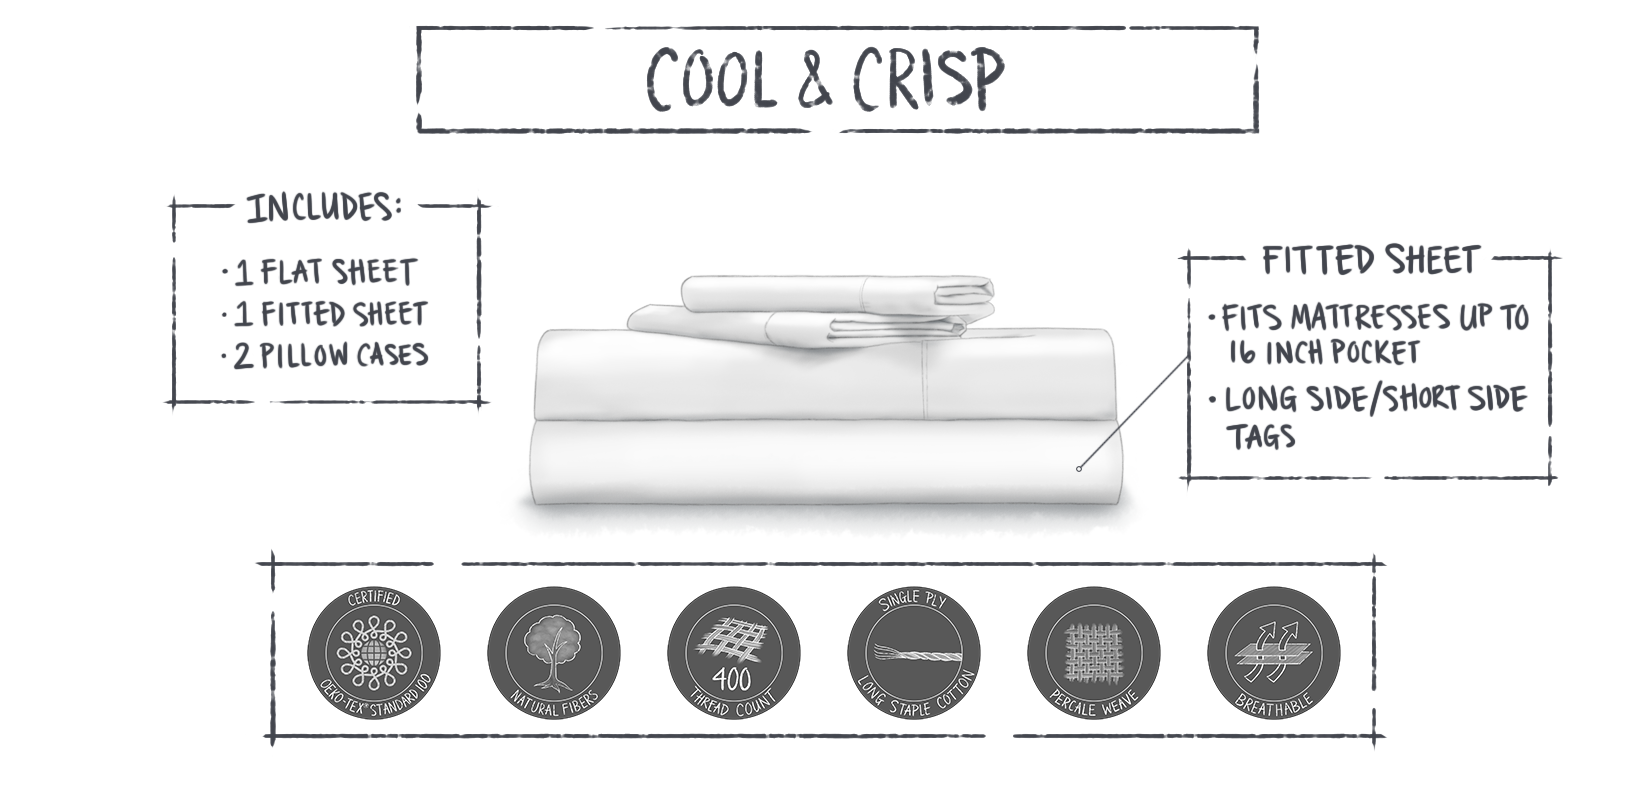 Cool and Crisp percale sheet set_infographic_final_Apr 02 2018_Loraine Yow